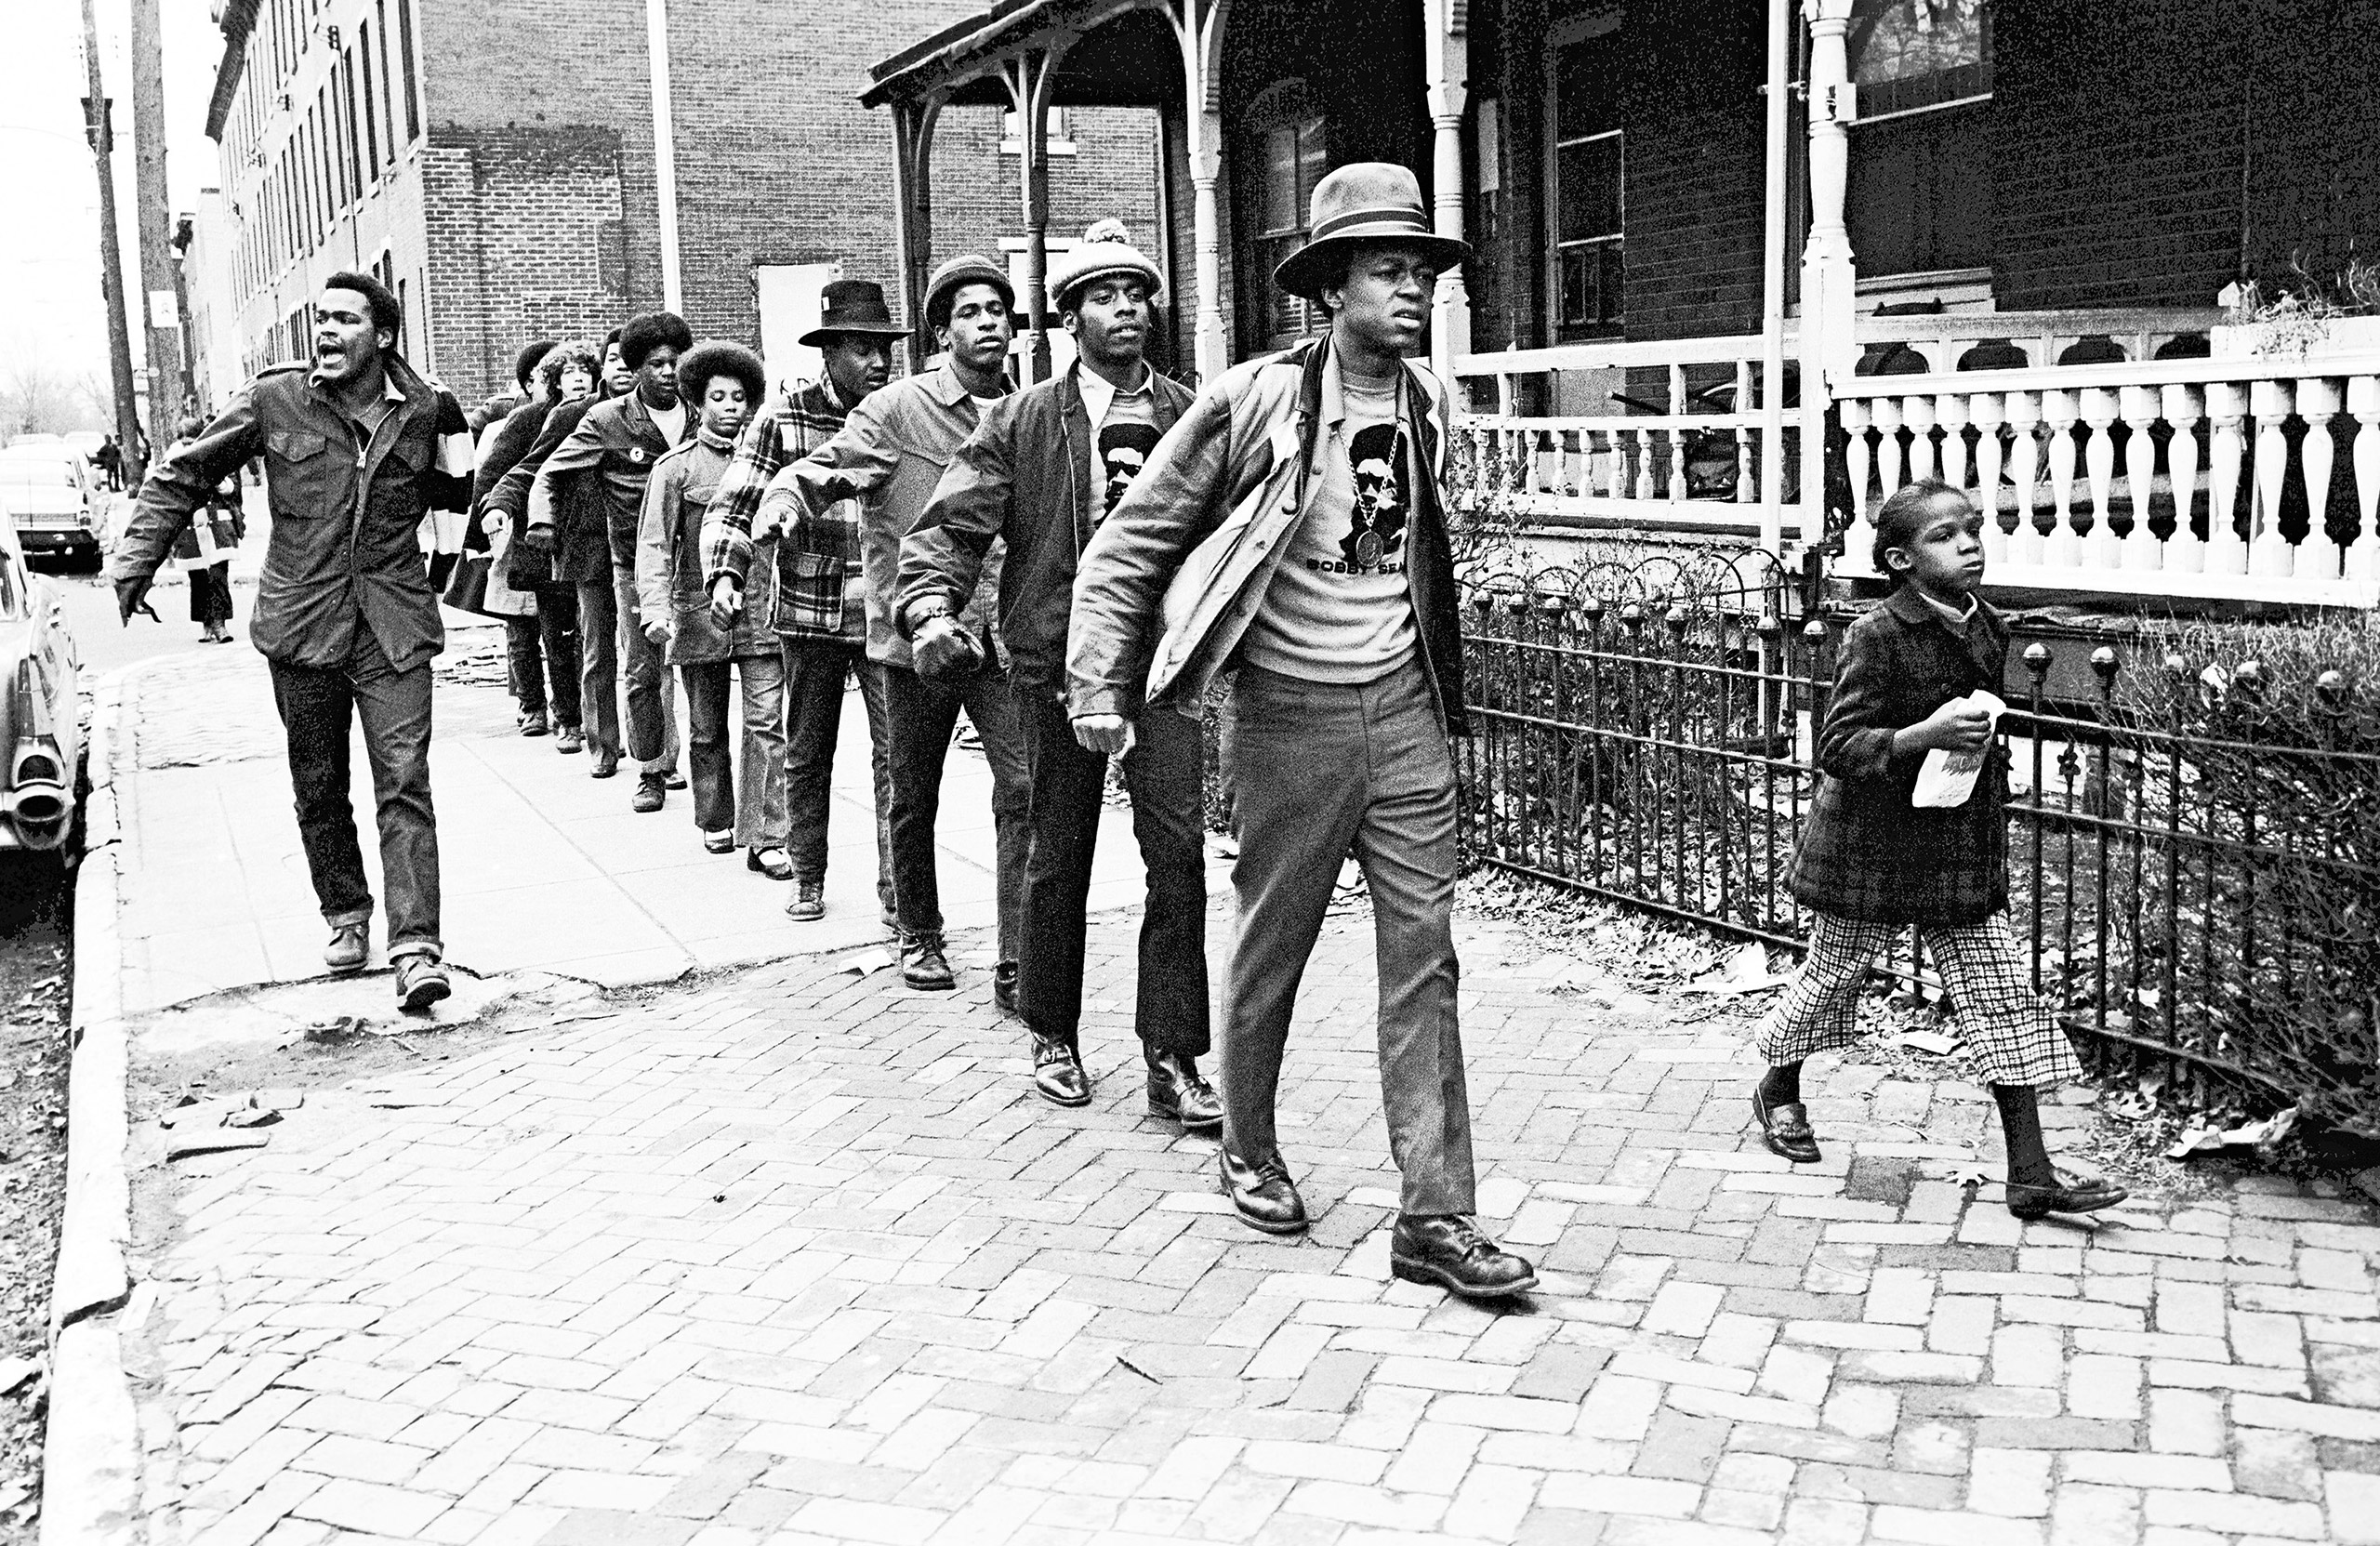 Panthers march through West Philadephia with Khalid Raheem in the lead, 1971.